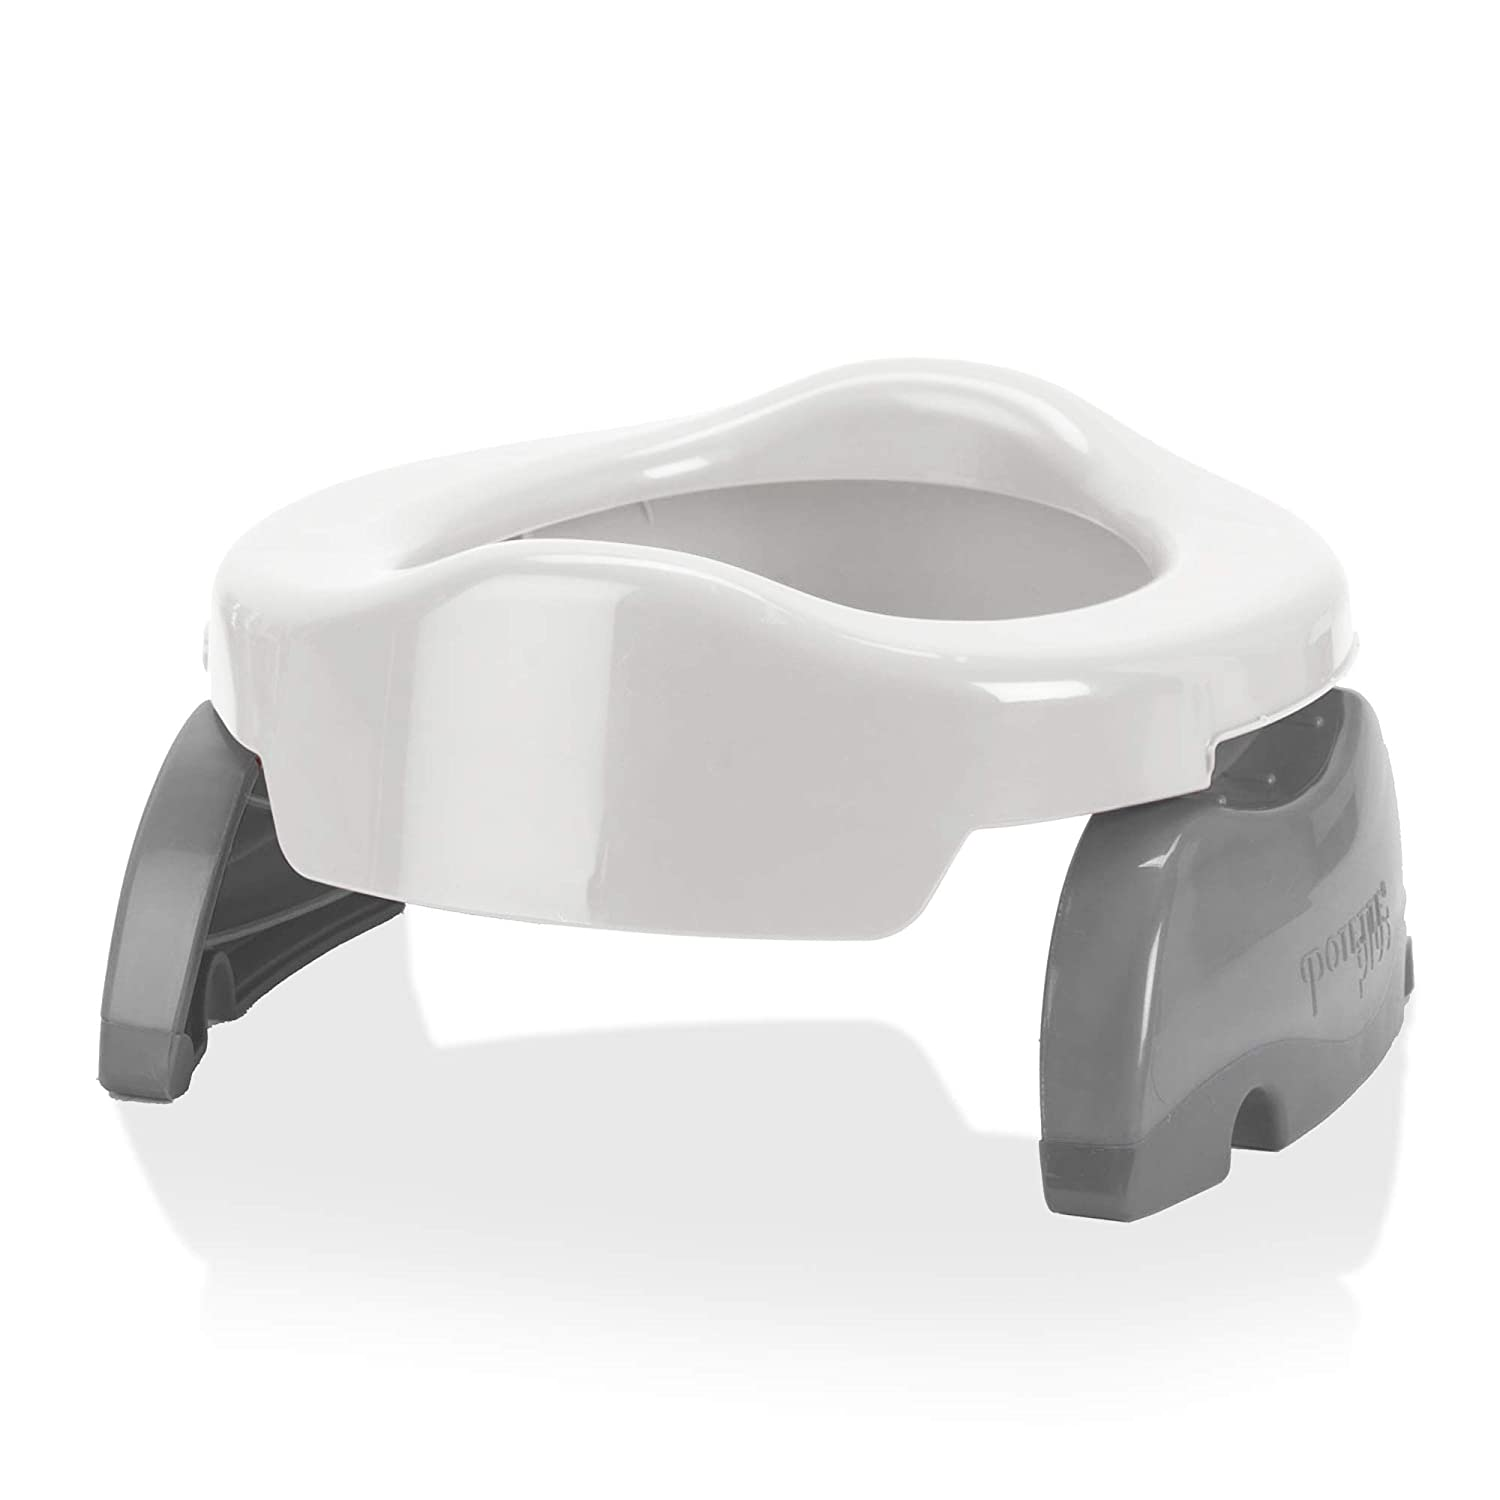 Kalencom Potette Plus 2-in-1 (Travel Potty) Trainer Seat